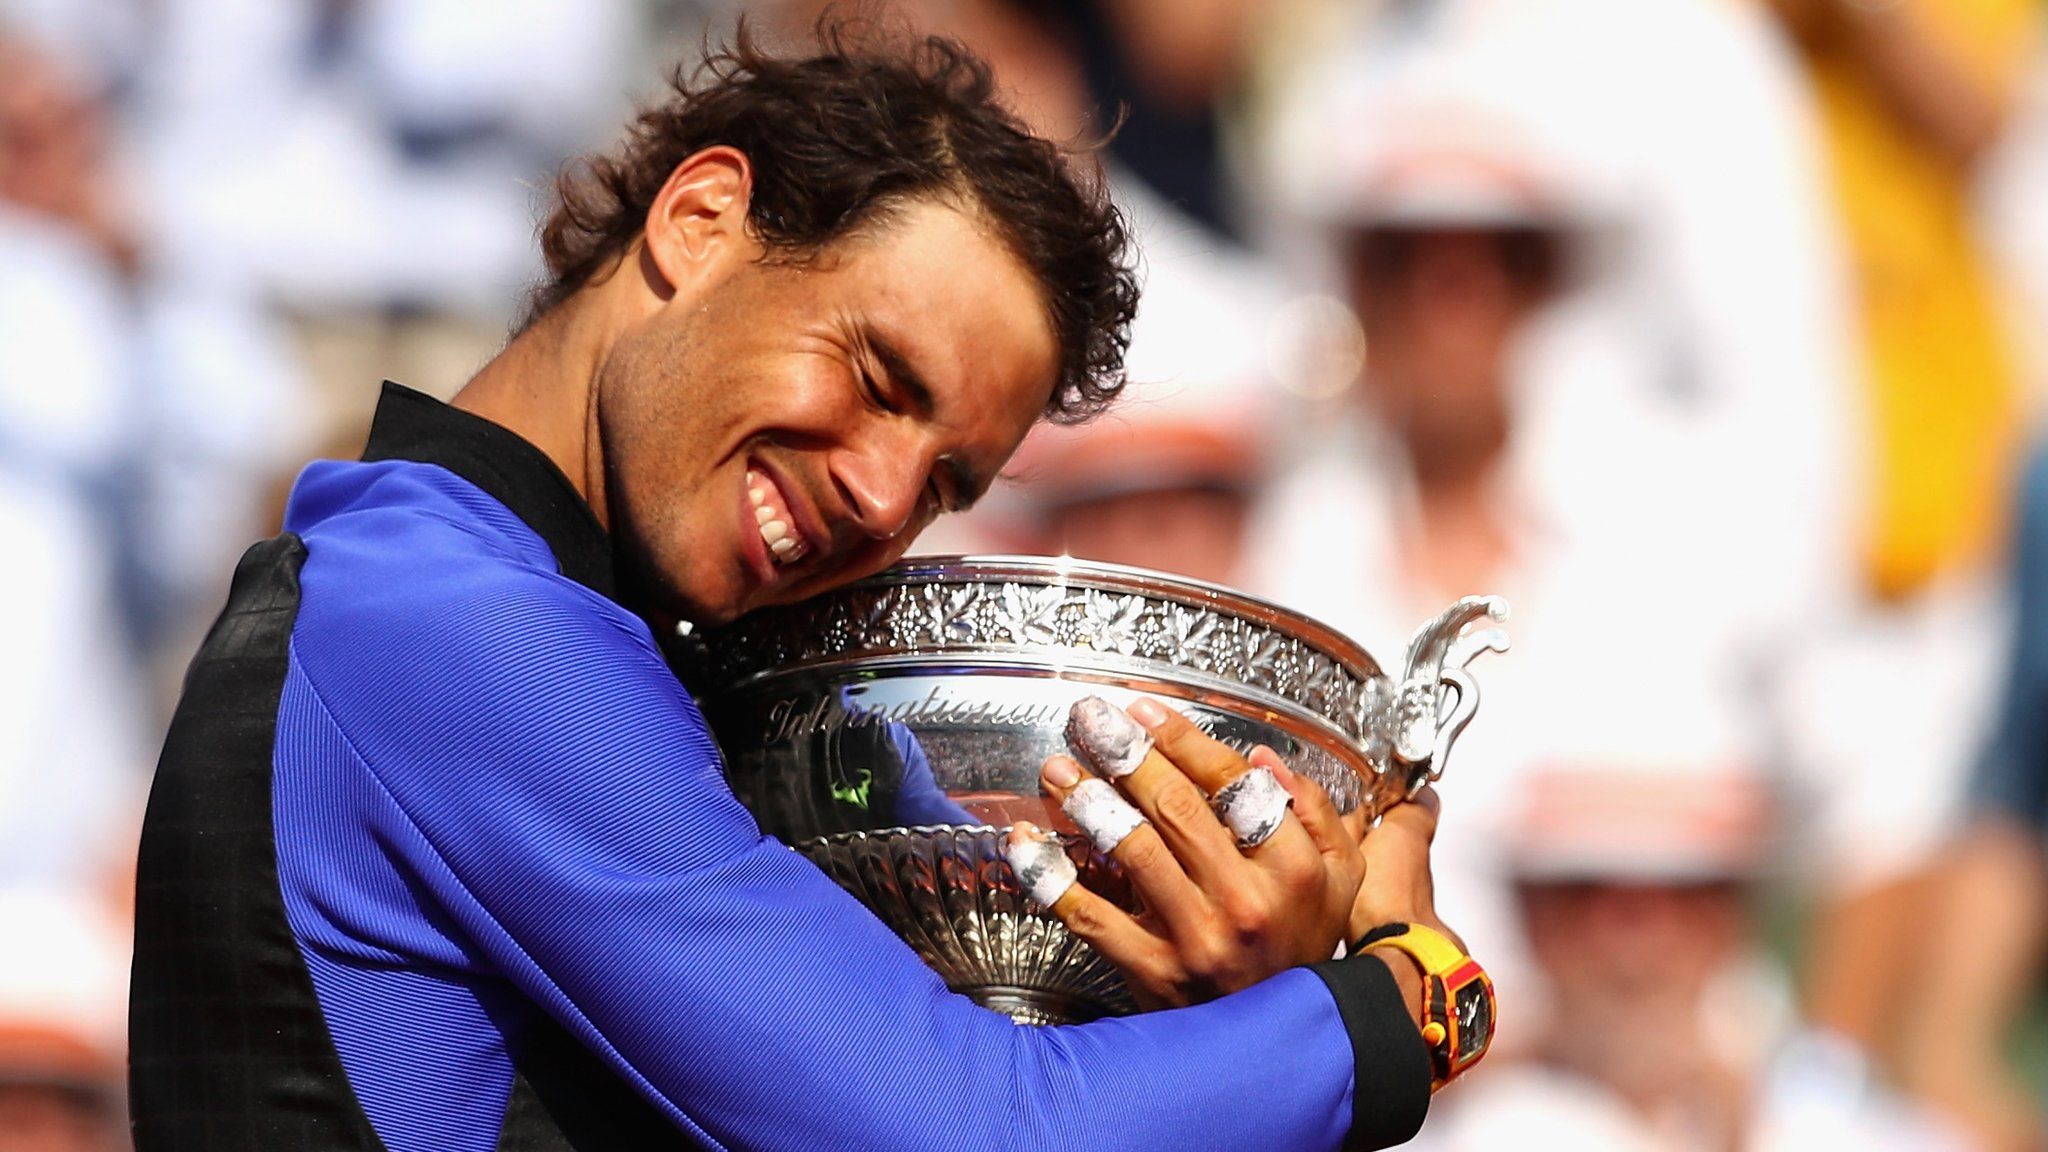 French Open 2018: Rafael Nadal favourite, no Andy Murray or Roger Federer, Serena Williams 'can win'